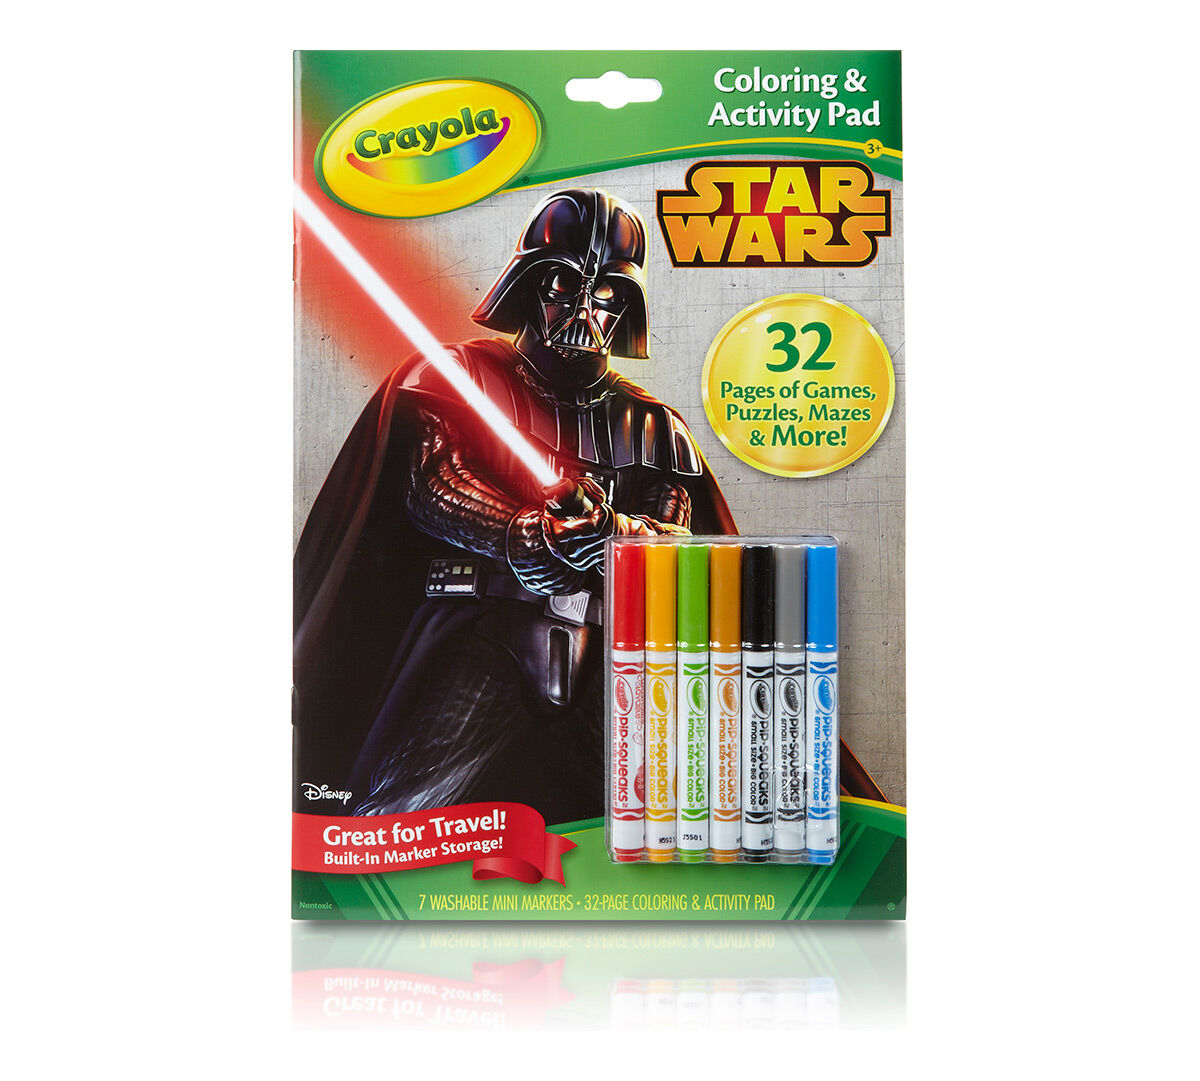 Crayola Coloring & Activity Pad – Star Wars